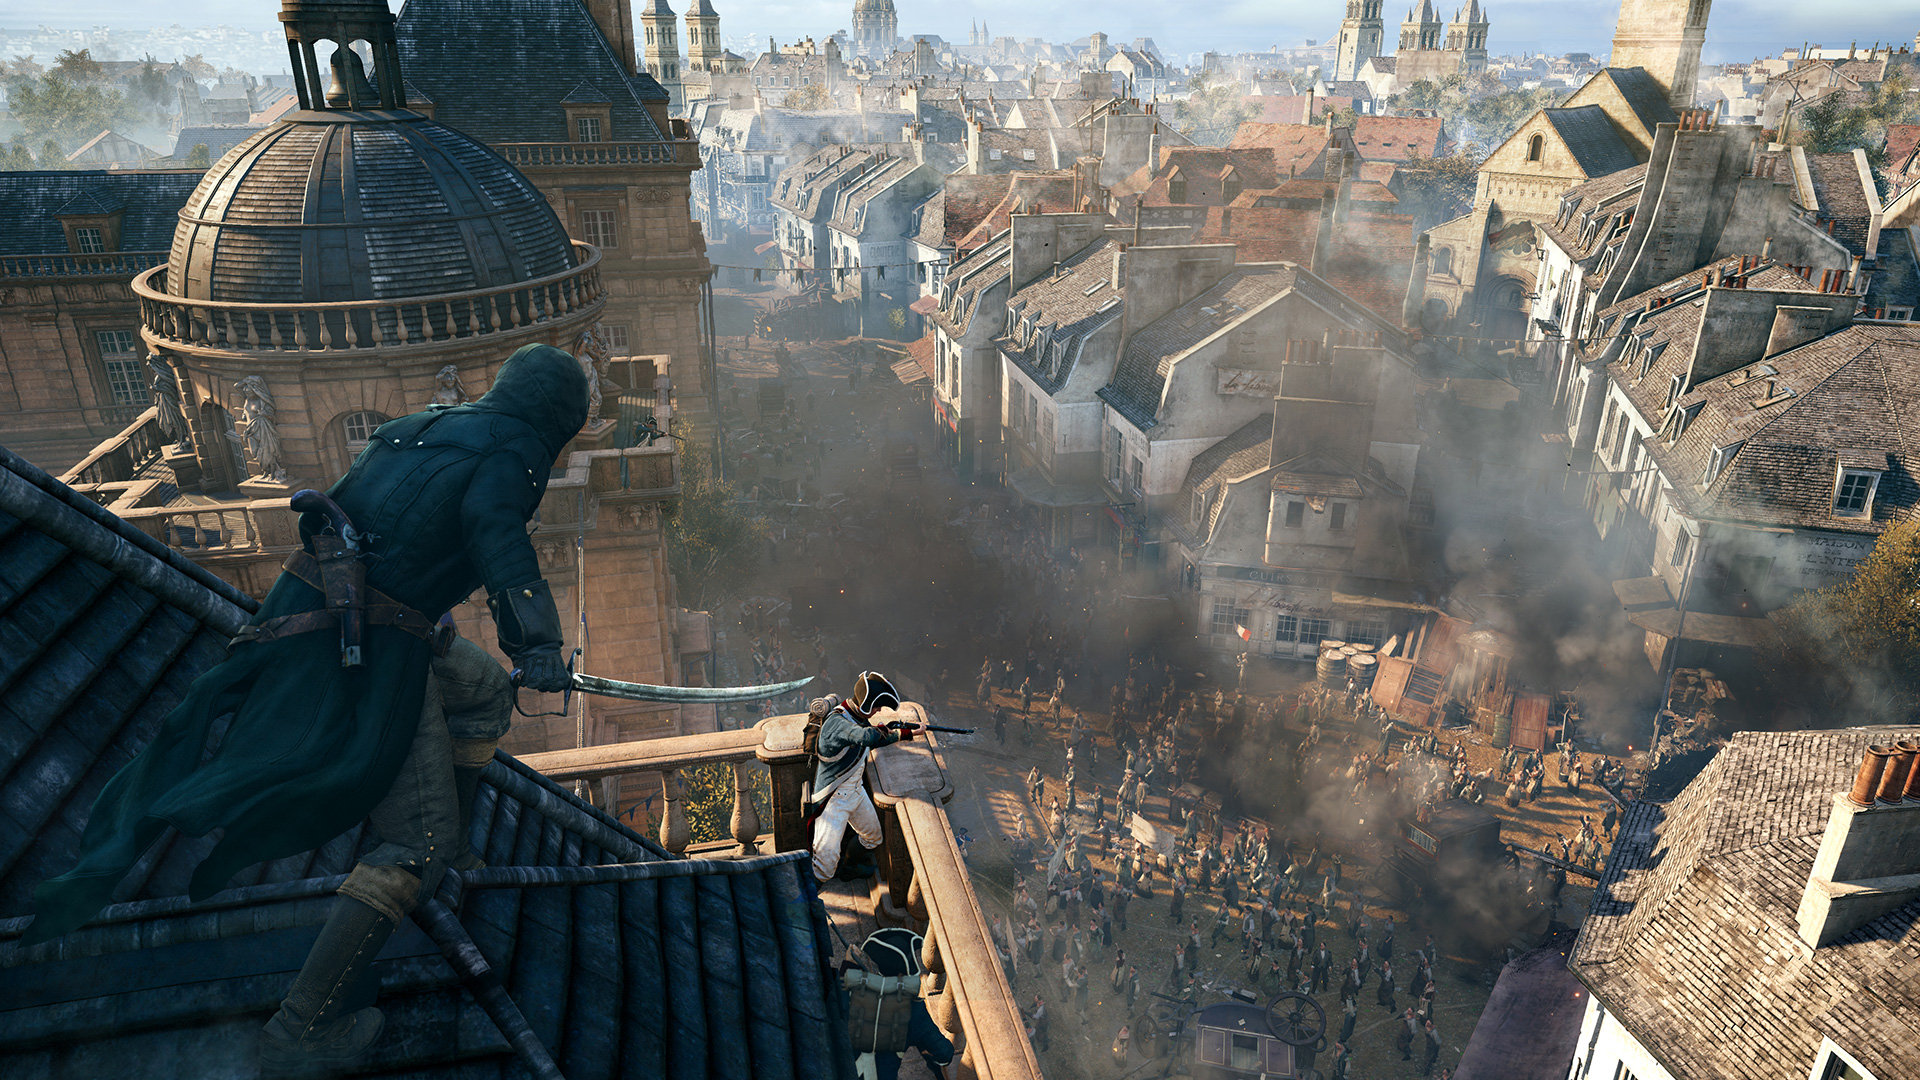 assassins-creed-unity-luxembourg-riot_1920_0_cinema_1920_0.jpg